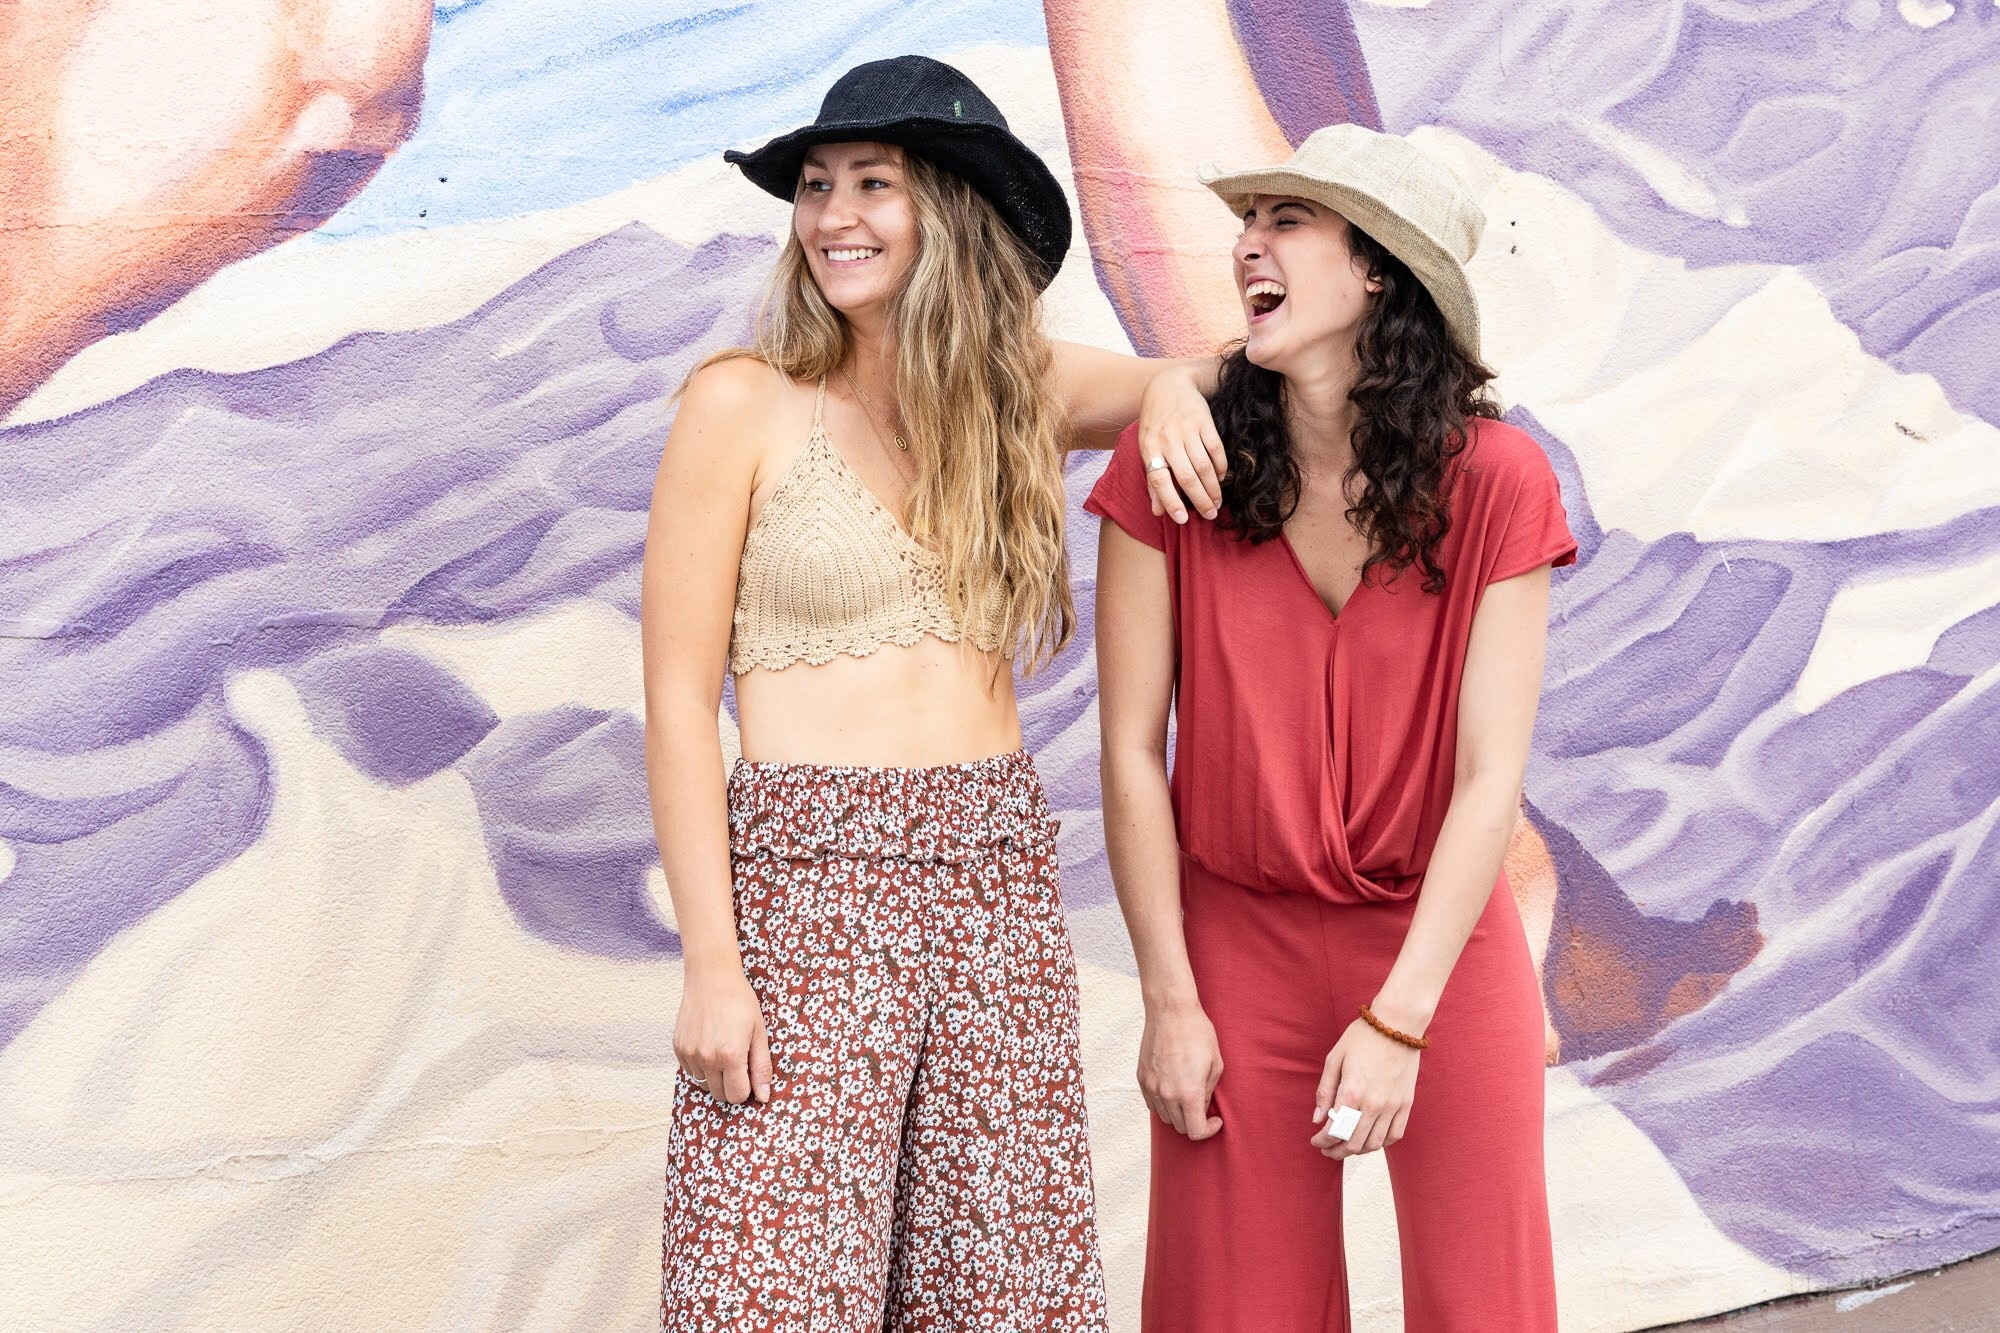 How to choose the perfect sun hat